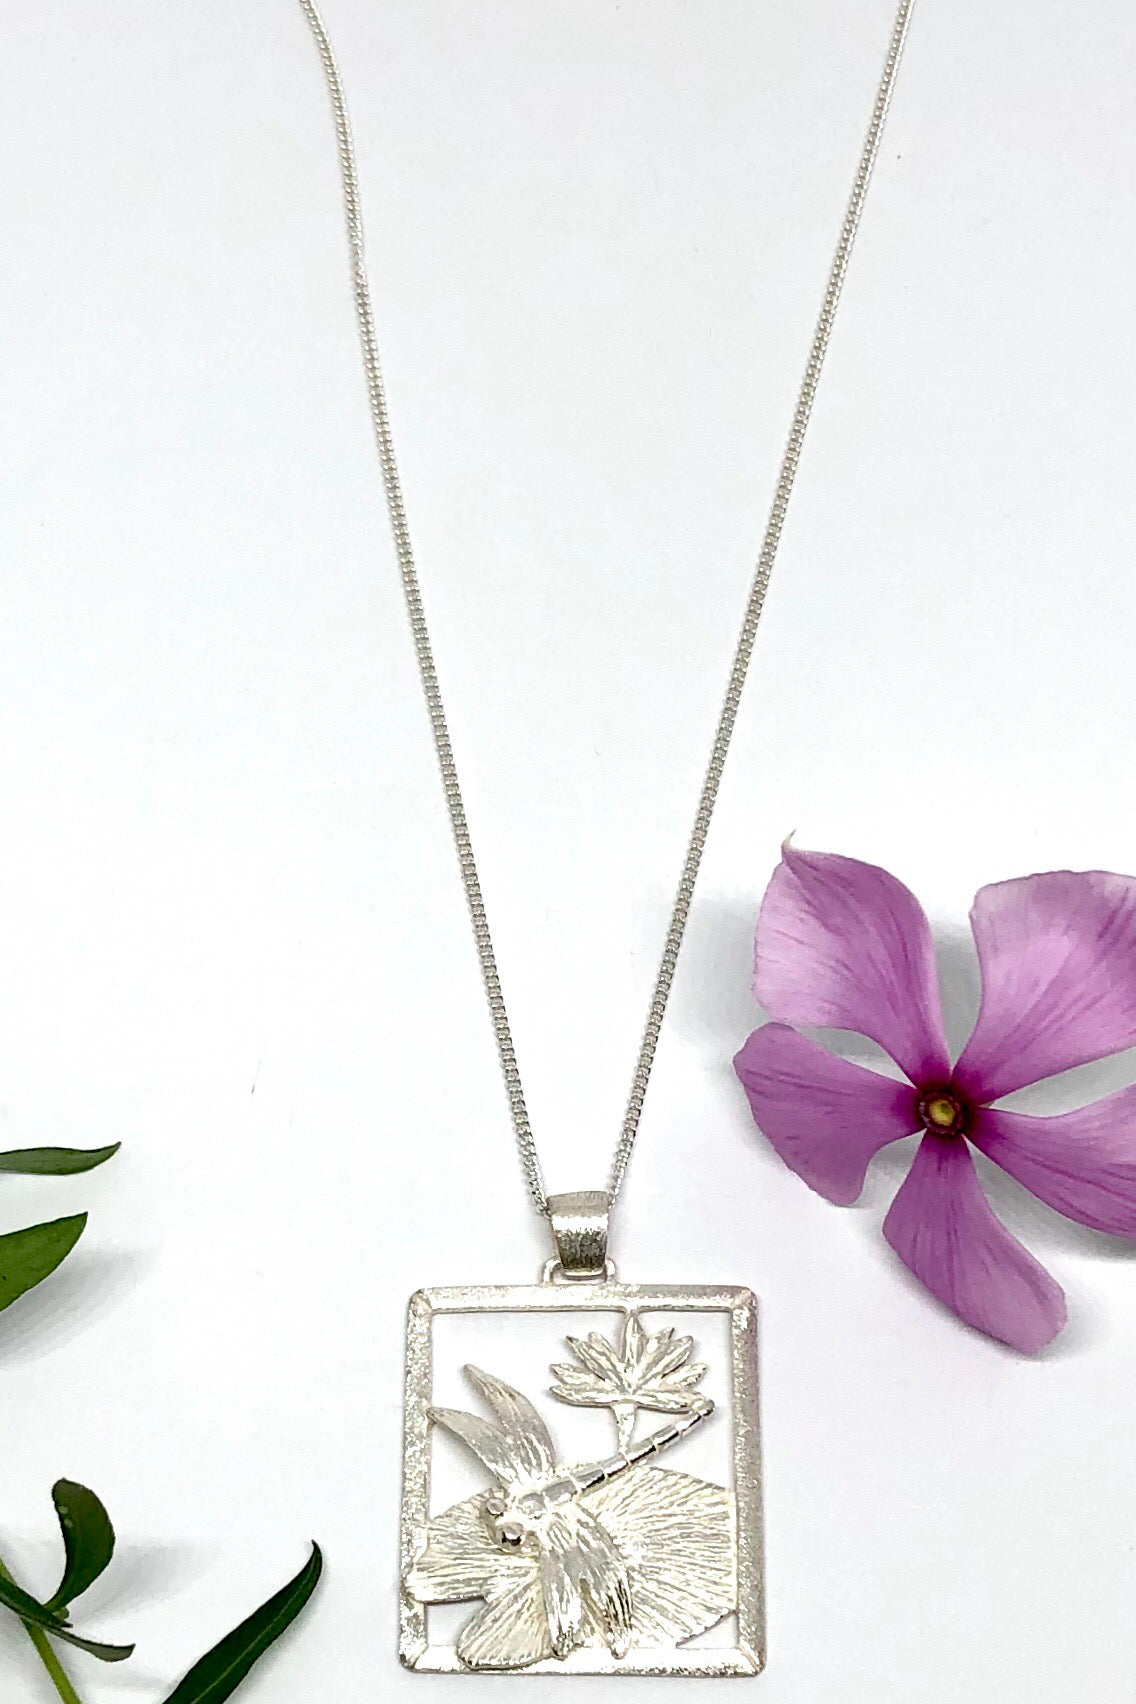 The Oracle Pendant Dragonfly is a 925 silver dragonfly on a lotus leaf and a water lily pendant featuring 2.5cm in length and comes on a 925 silver chain.